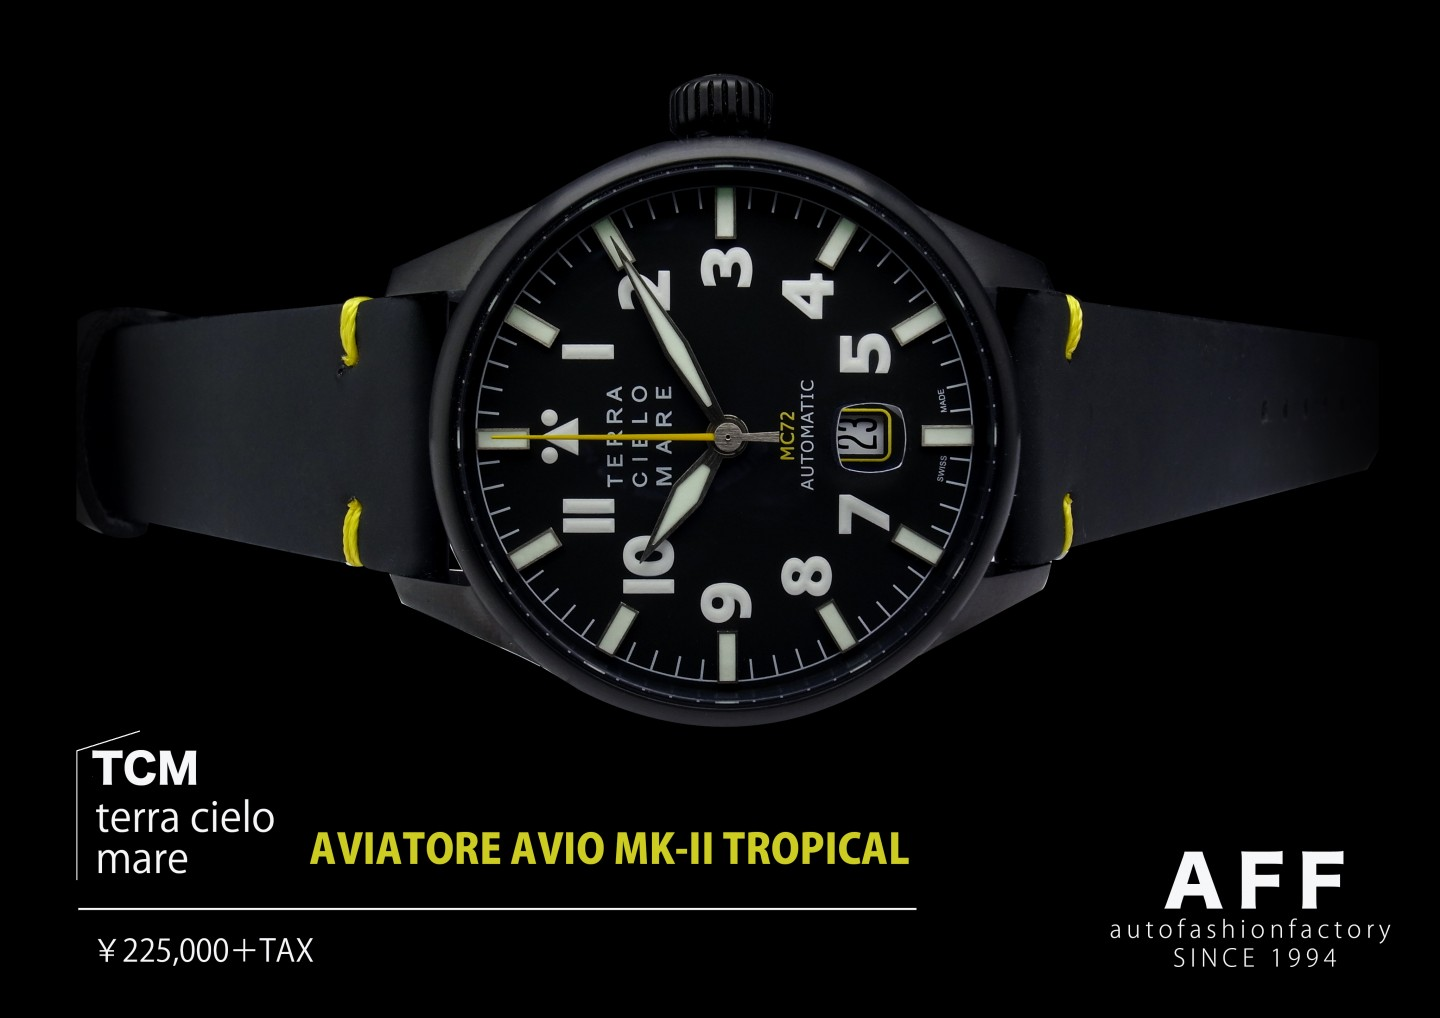 AVIATORE AVIO MK-II TROPICAL